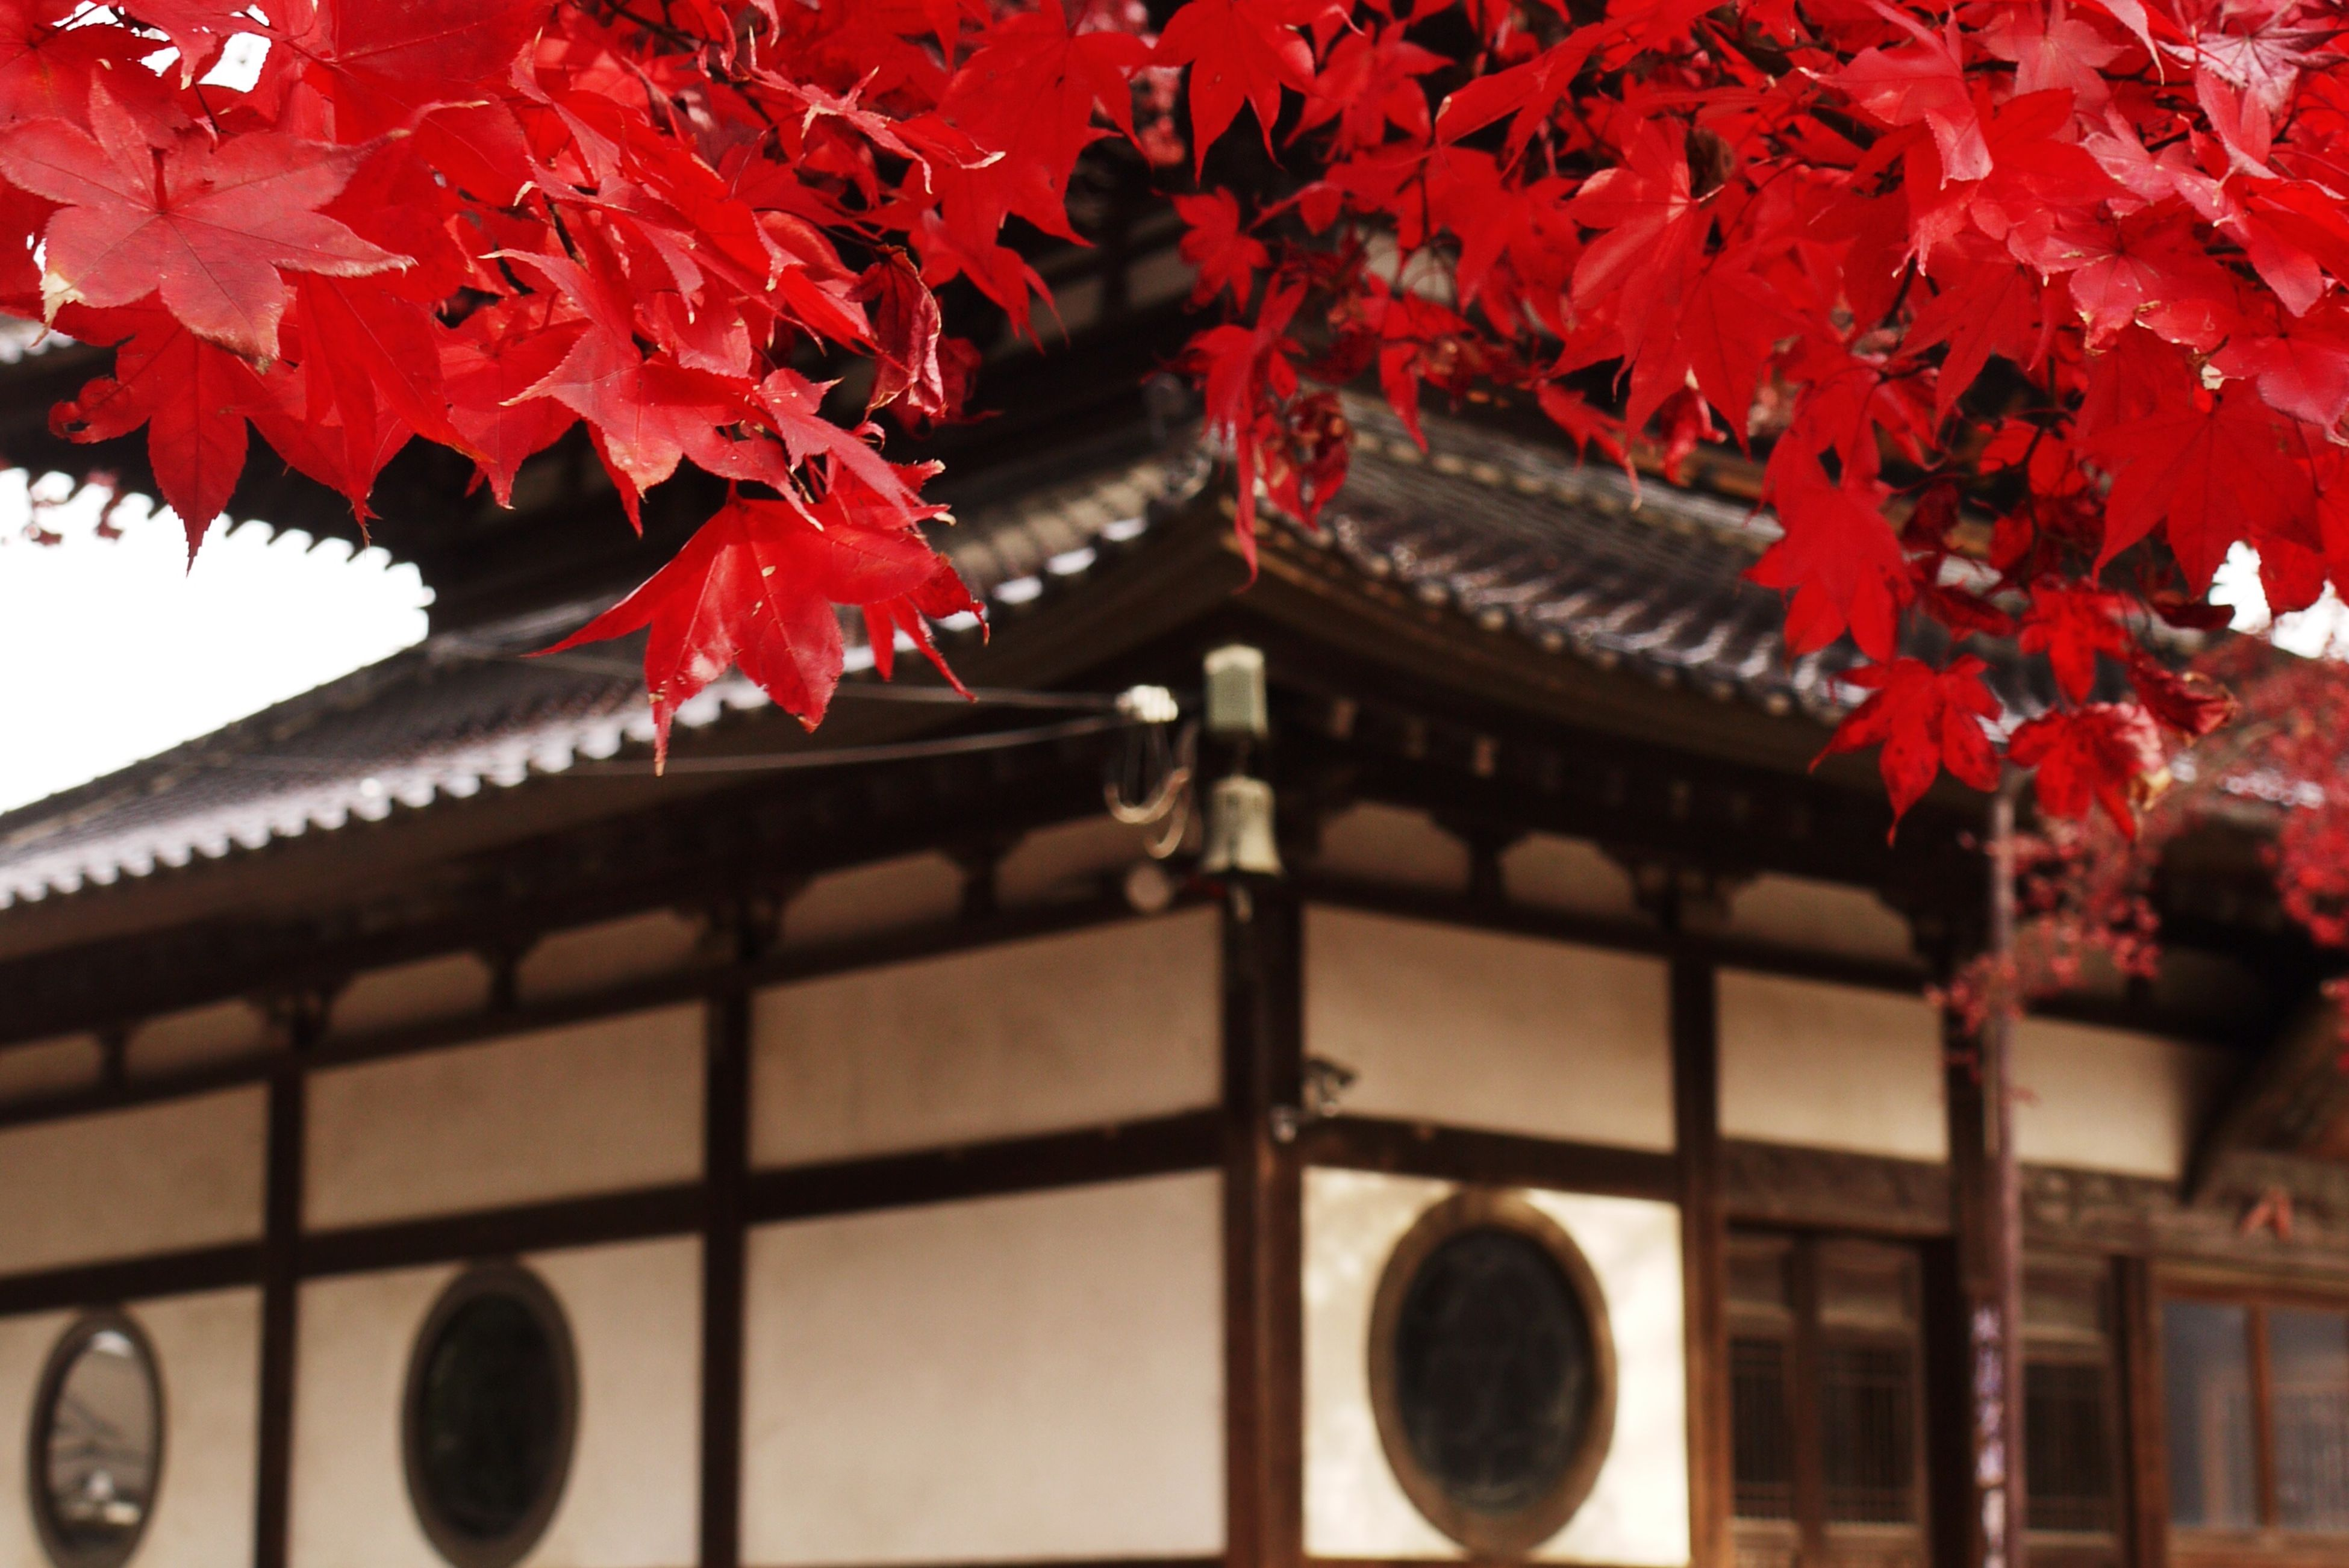 low angle view, red, hanging, decoration, built structure, architecture, religion, building exterior, spirituality, place of worship, lantern, close-up, tradition, indoors, lighting equipment, no people, ornate, day, cultures, flower